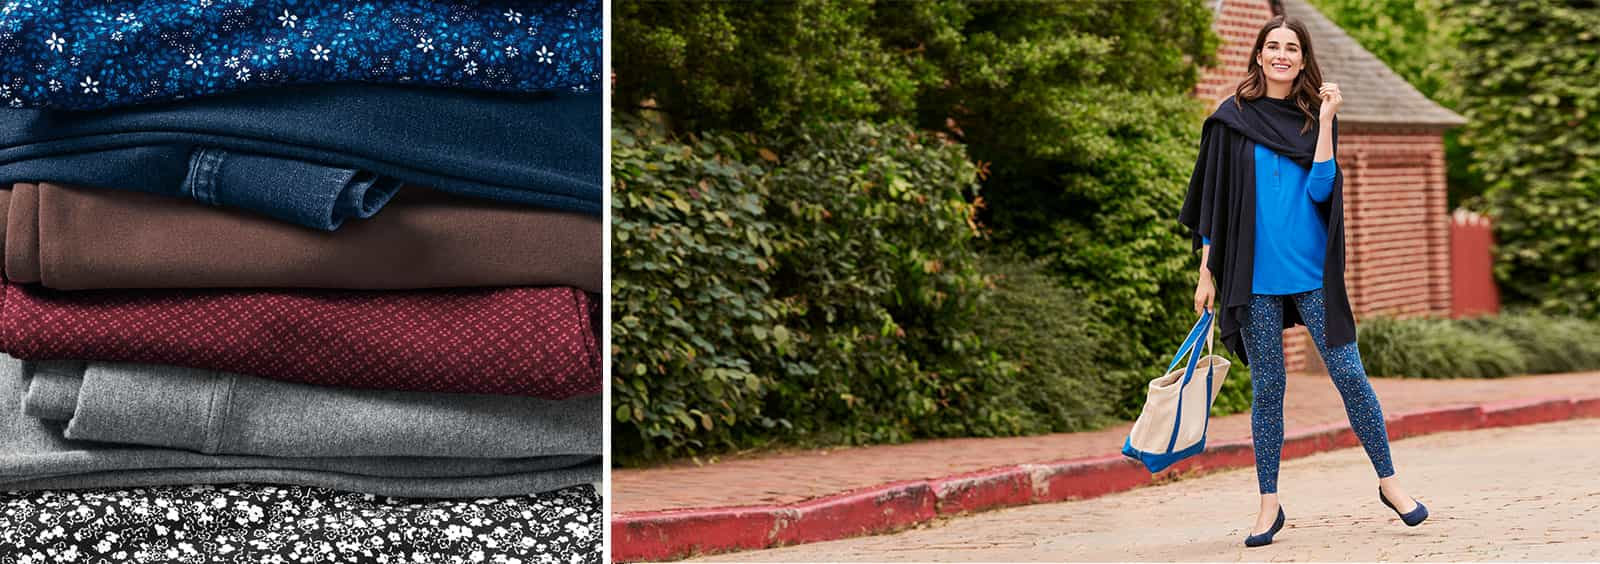 Your Legging Questions Answered